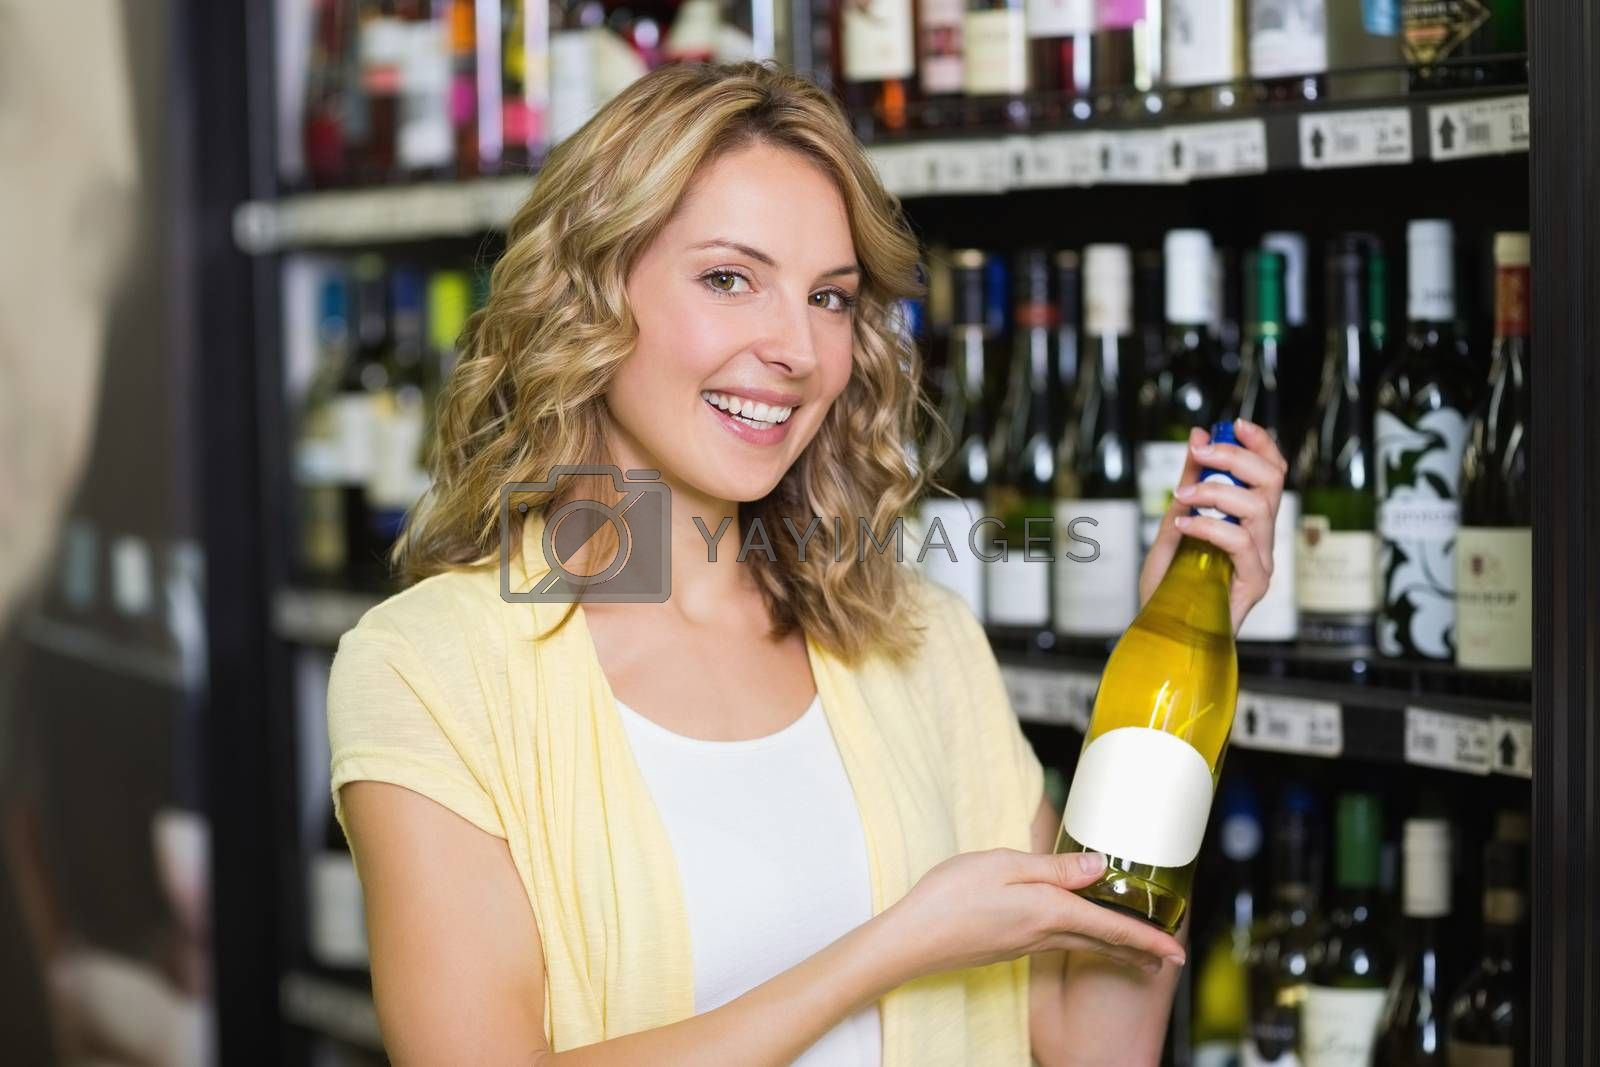 Royalty free image of Portrait of a smiling pretty blonde woman showing a wine bottle  by Wavebreakmedia